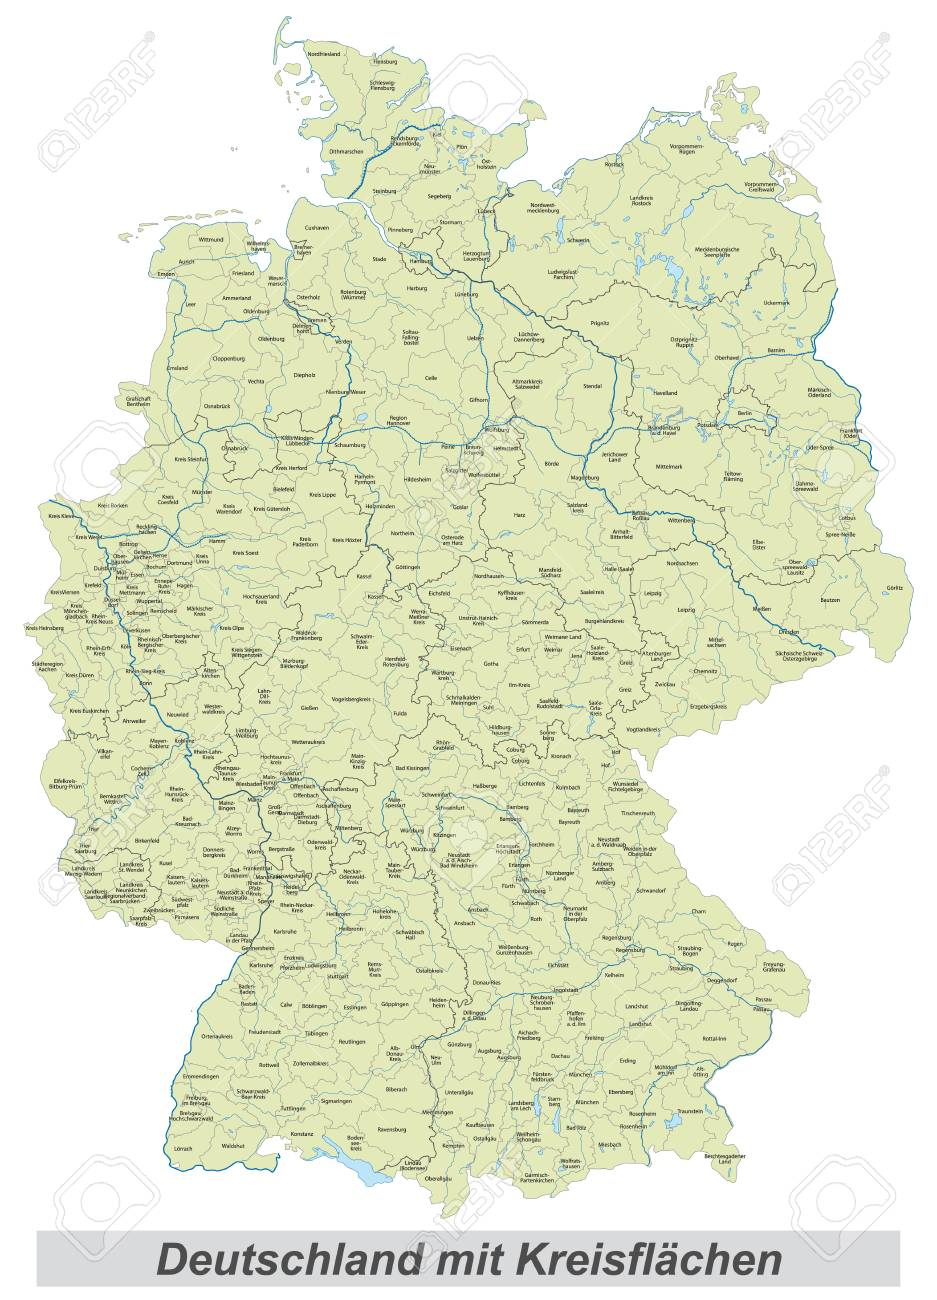 Map Of Germany And Surrounding Counties.Germany Map With Counties Landmarks And Inscriptions Stock Photo